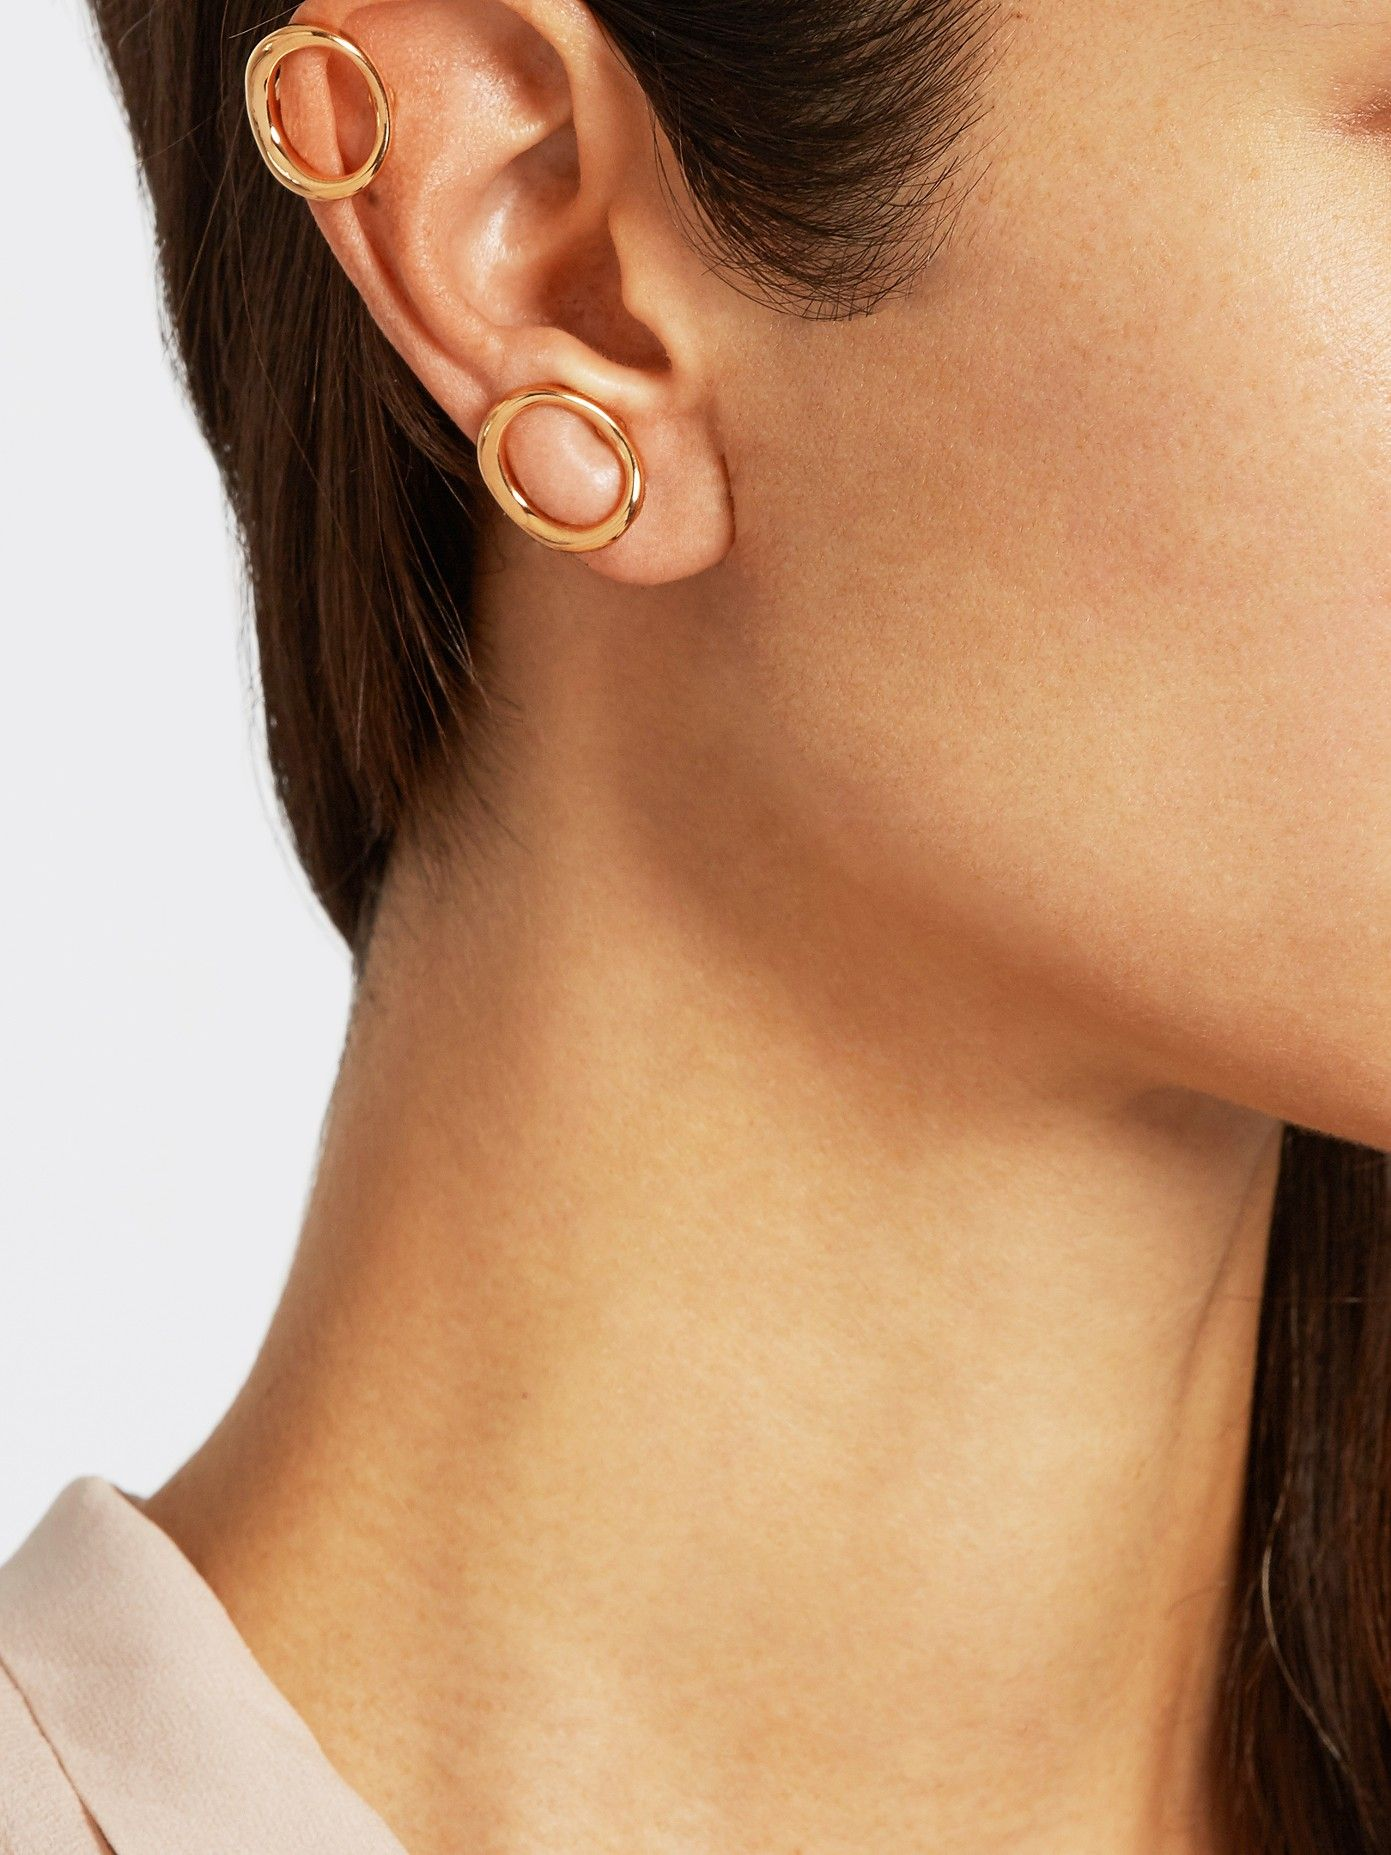 chesnais earrings hook product charlotte earring mian gold vermeil vand